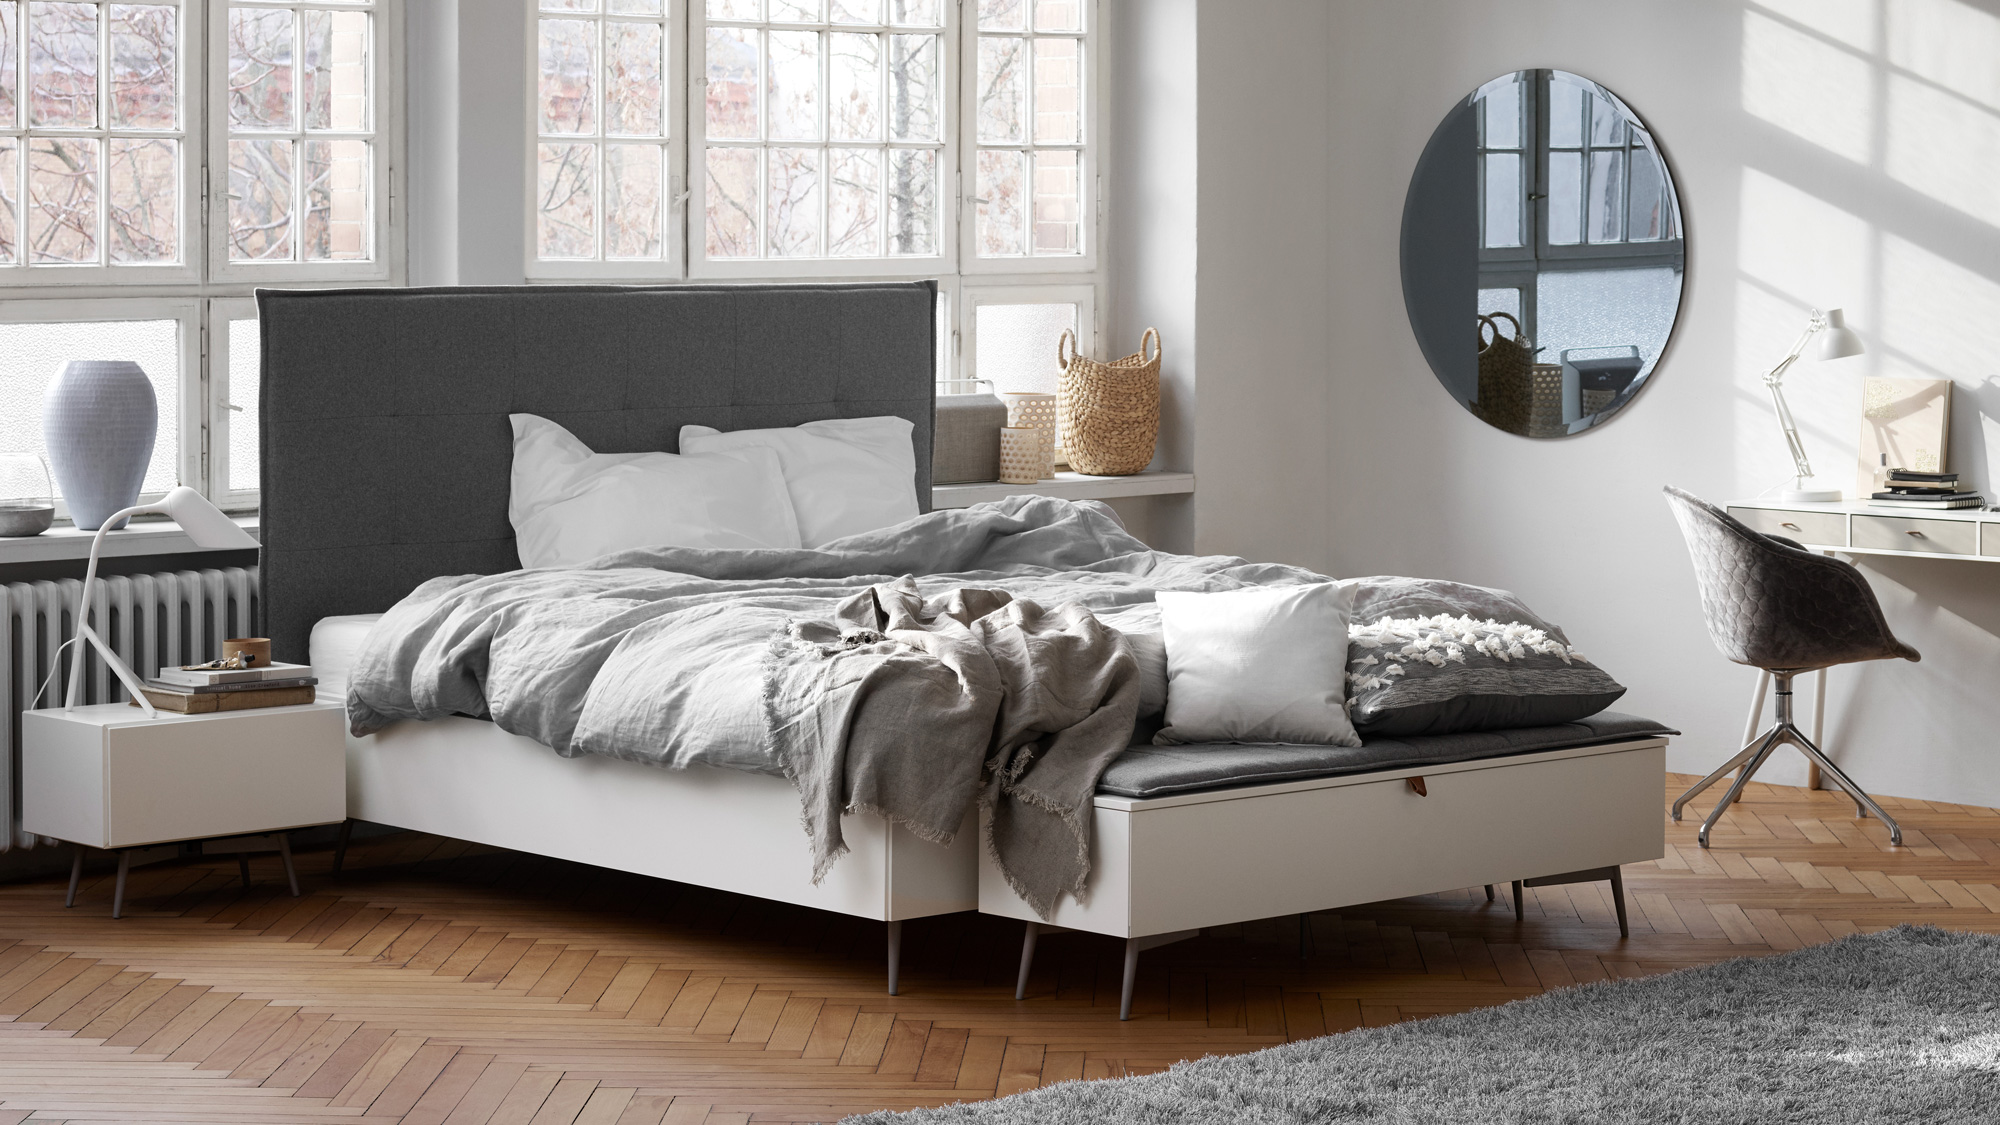 Laguno bed with grey headboard and dark grey bedspread and bench in white